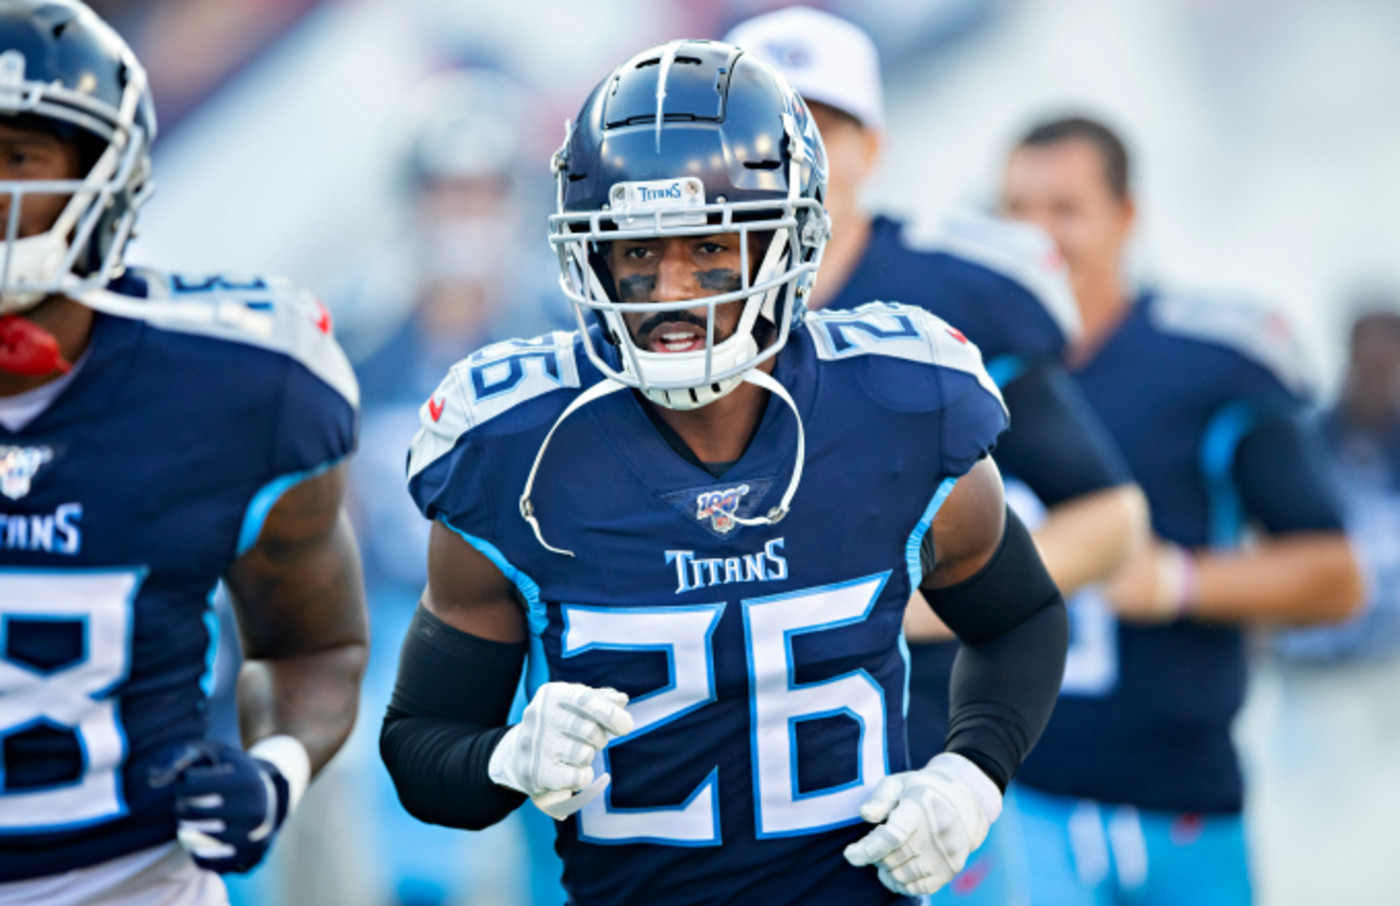 Logan Ryan #26 of the Tennessee Titans jogs onto the field